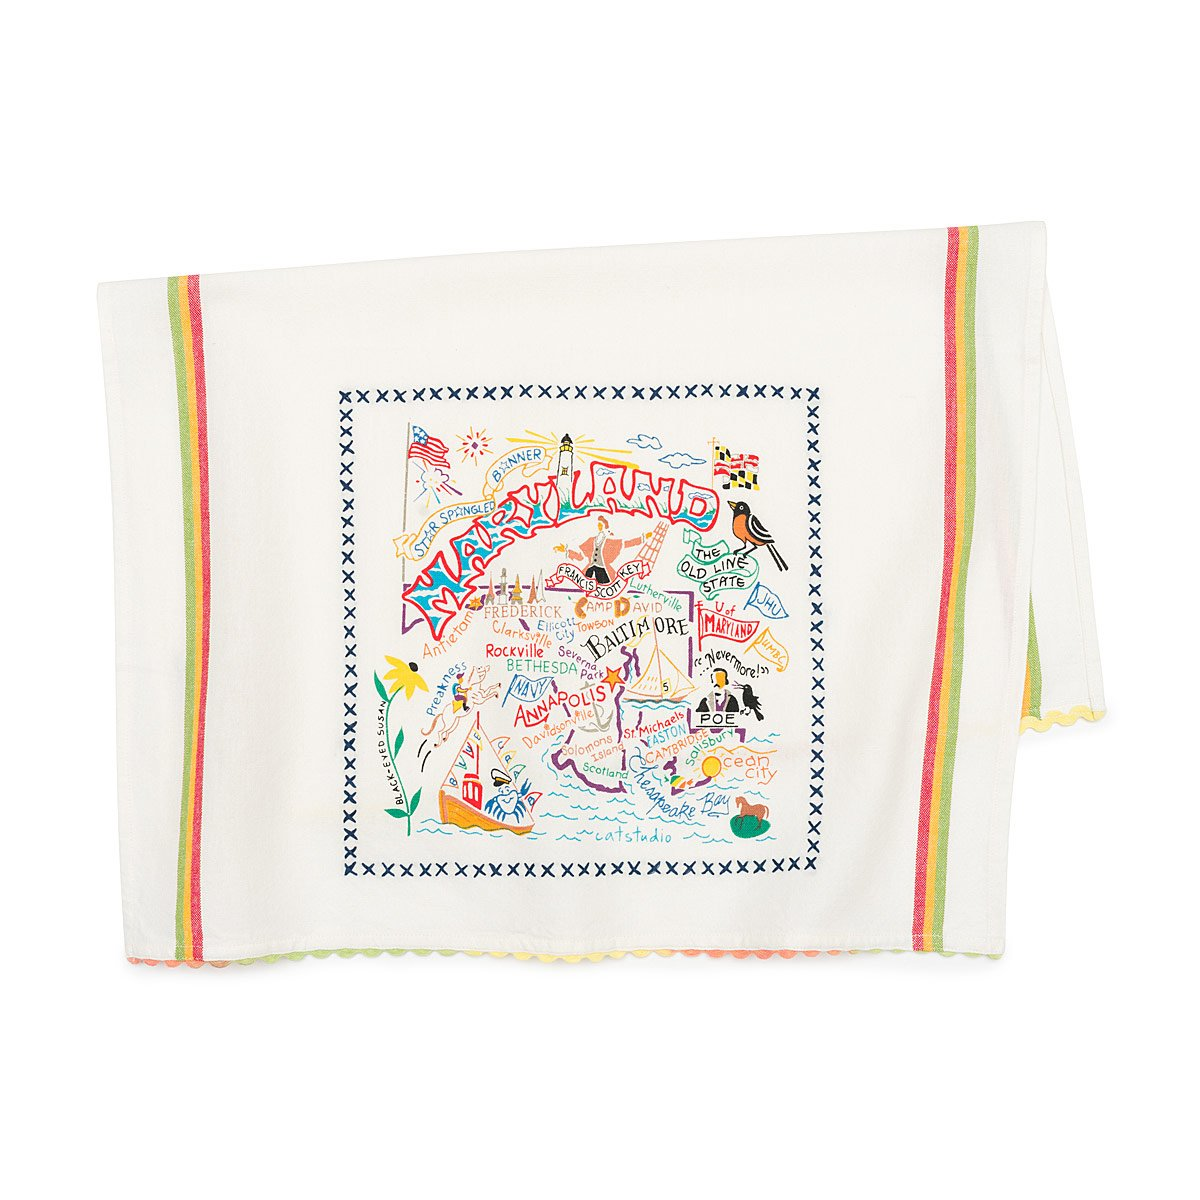 Maryland dish towel with illustrations inspired by the state